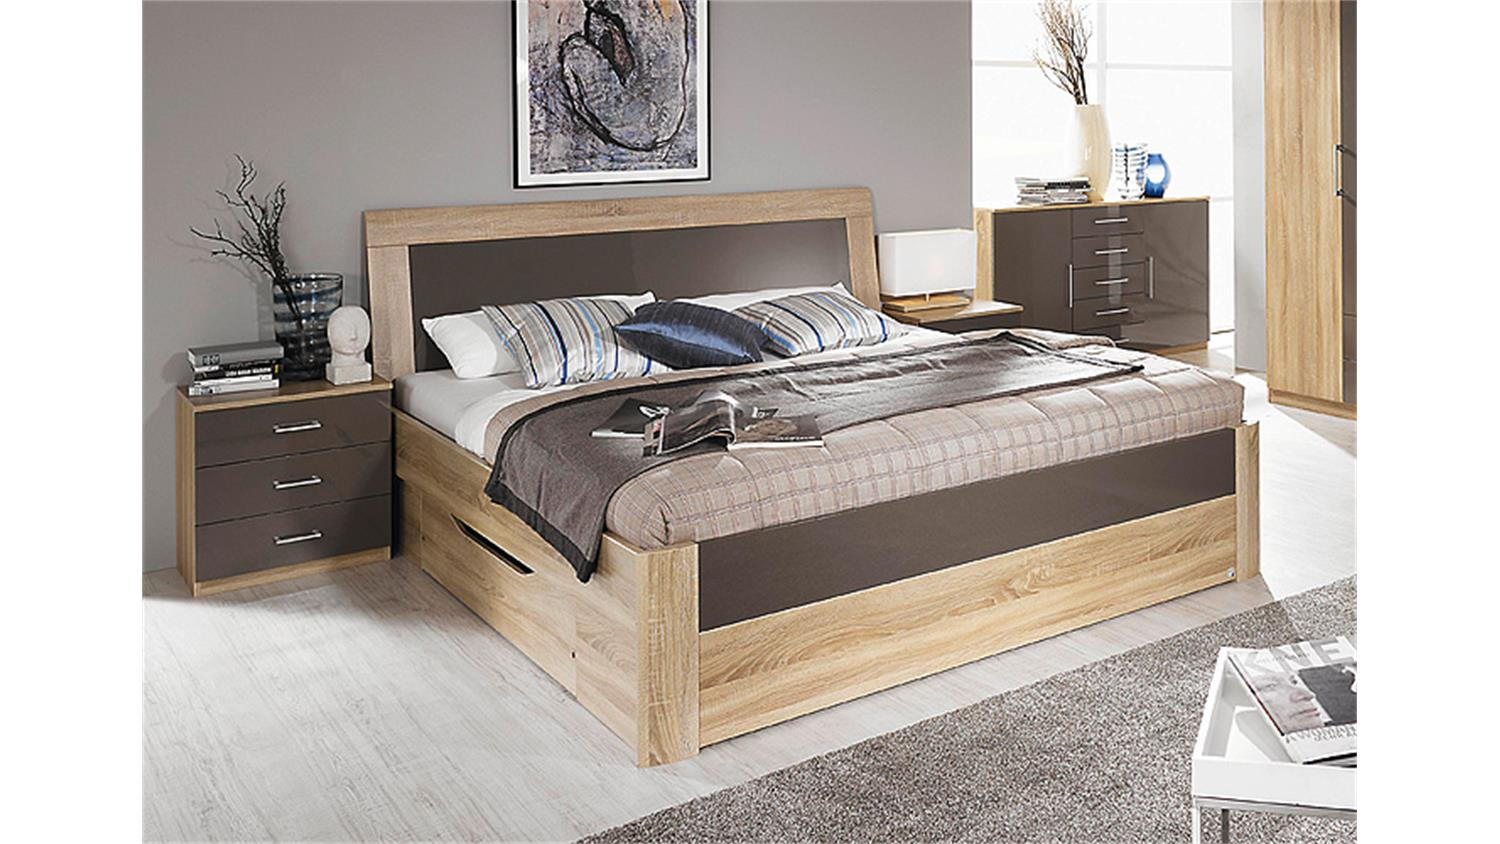 bett arona sonoma eiche lava hochglanz bettkasten 180x200. Black Bedroom Furniture Sets. Home Design Ideas